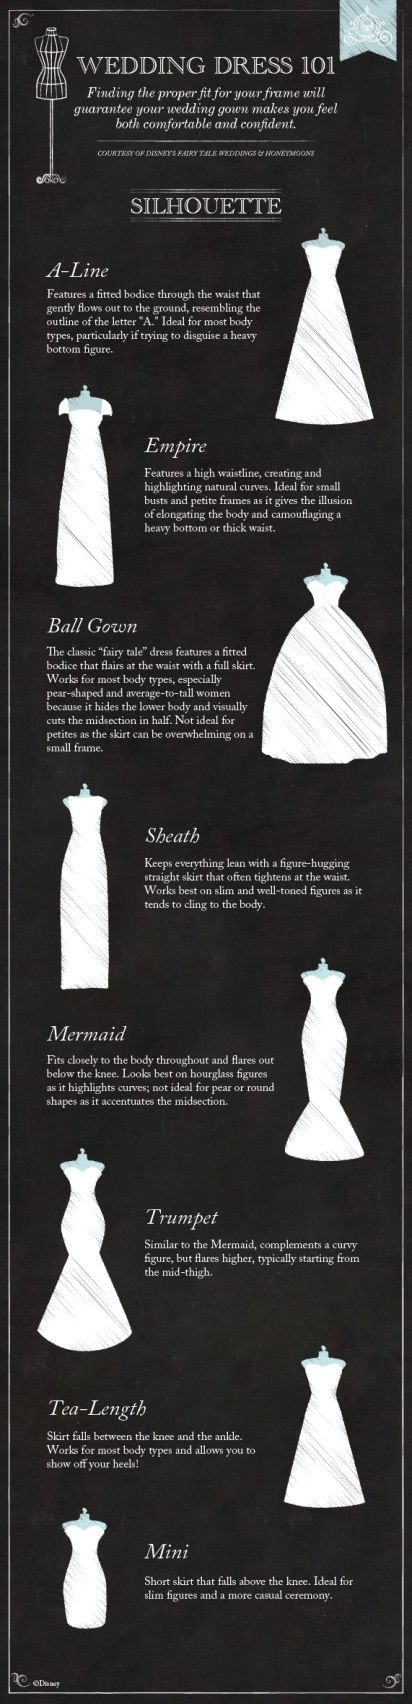 Wedding Dress 101: The Silhouette #wedding #dress Jess: Lemme know what appeals to you here soon, m'kay?